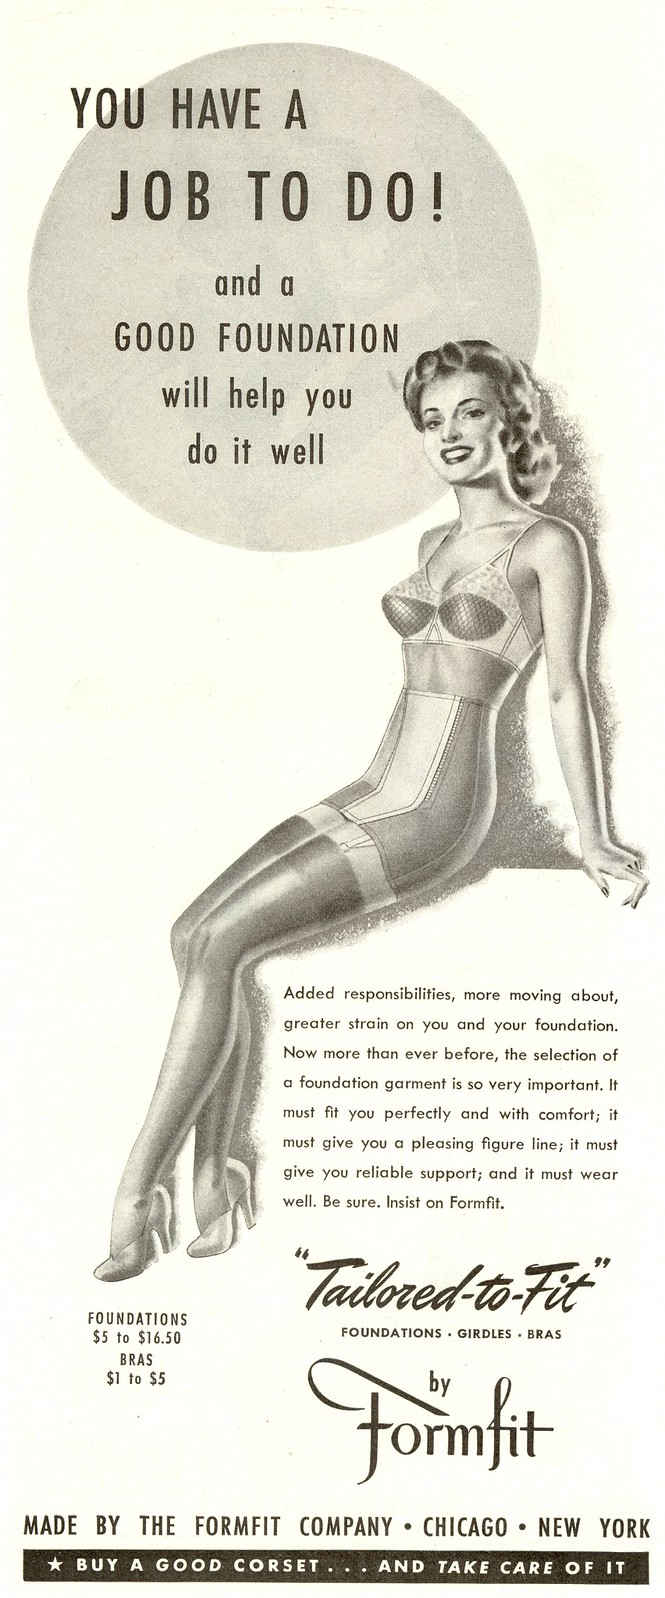 Formfit - published in Woman's Home Companion - October 1942